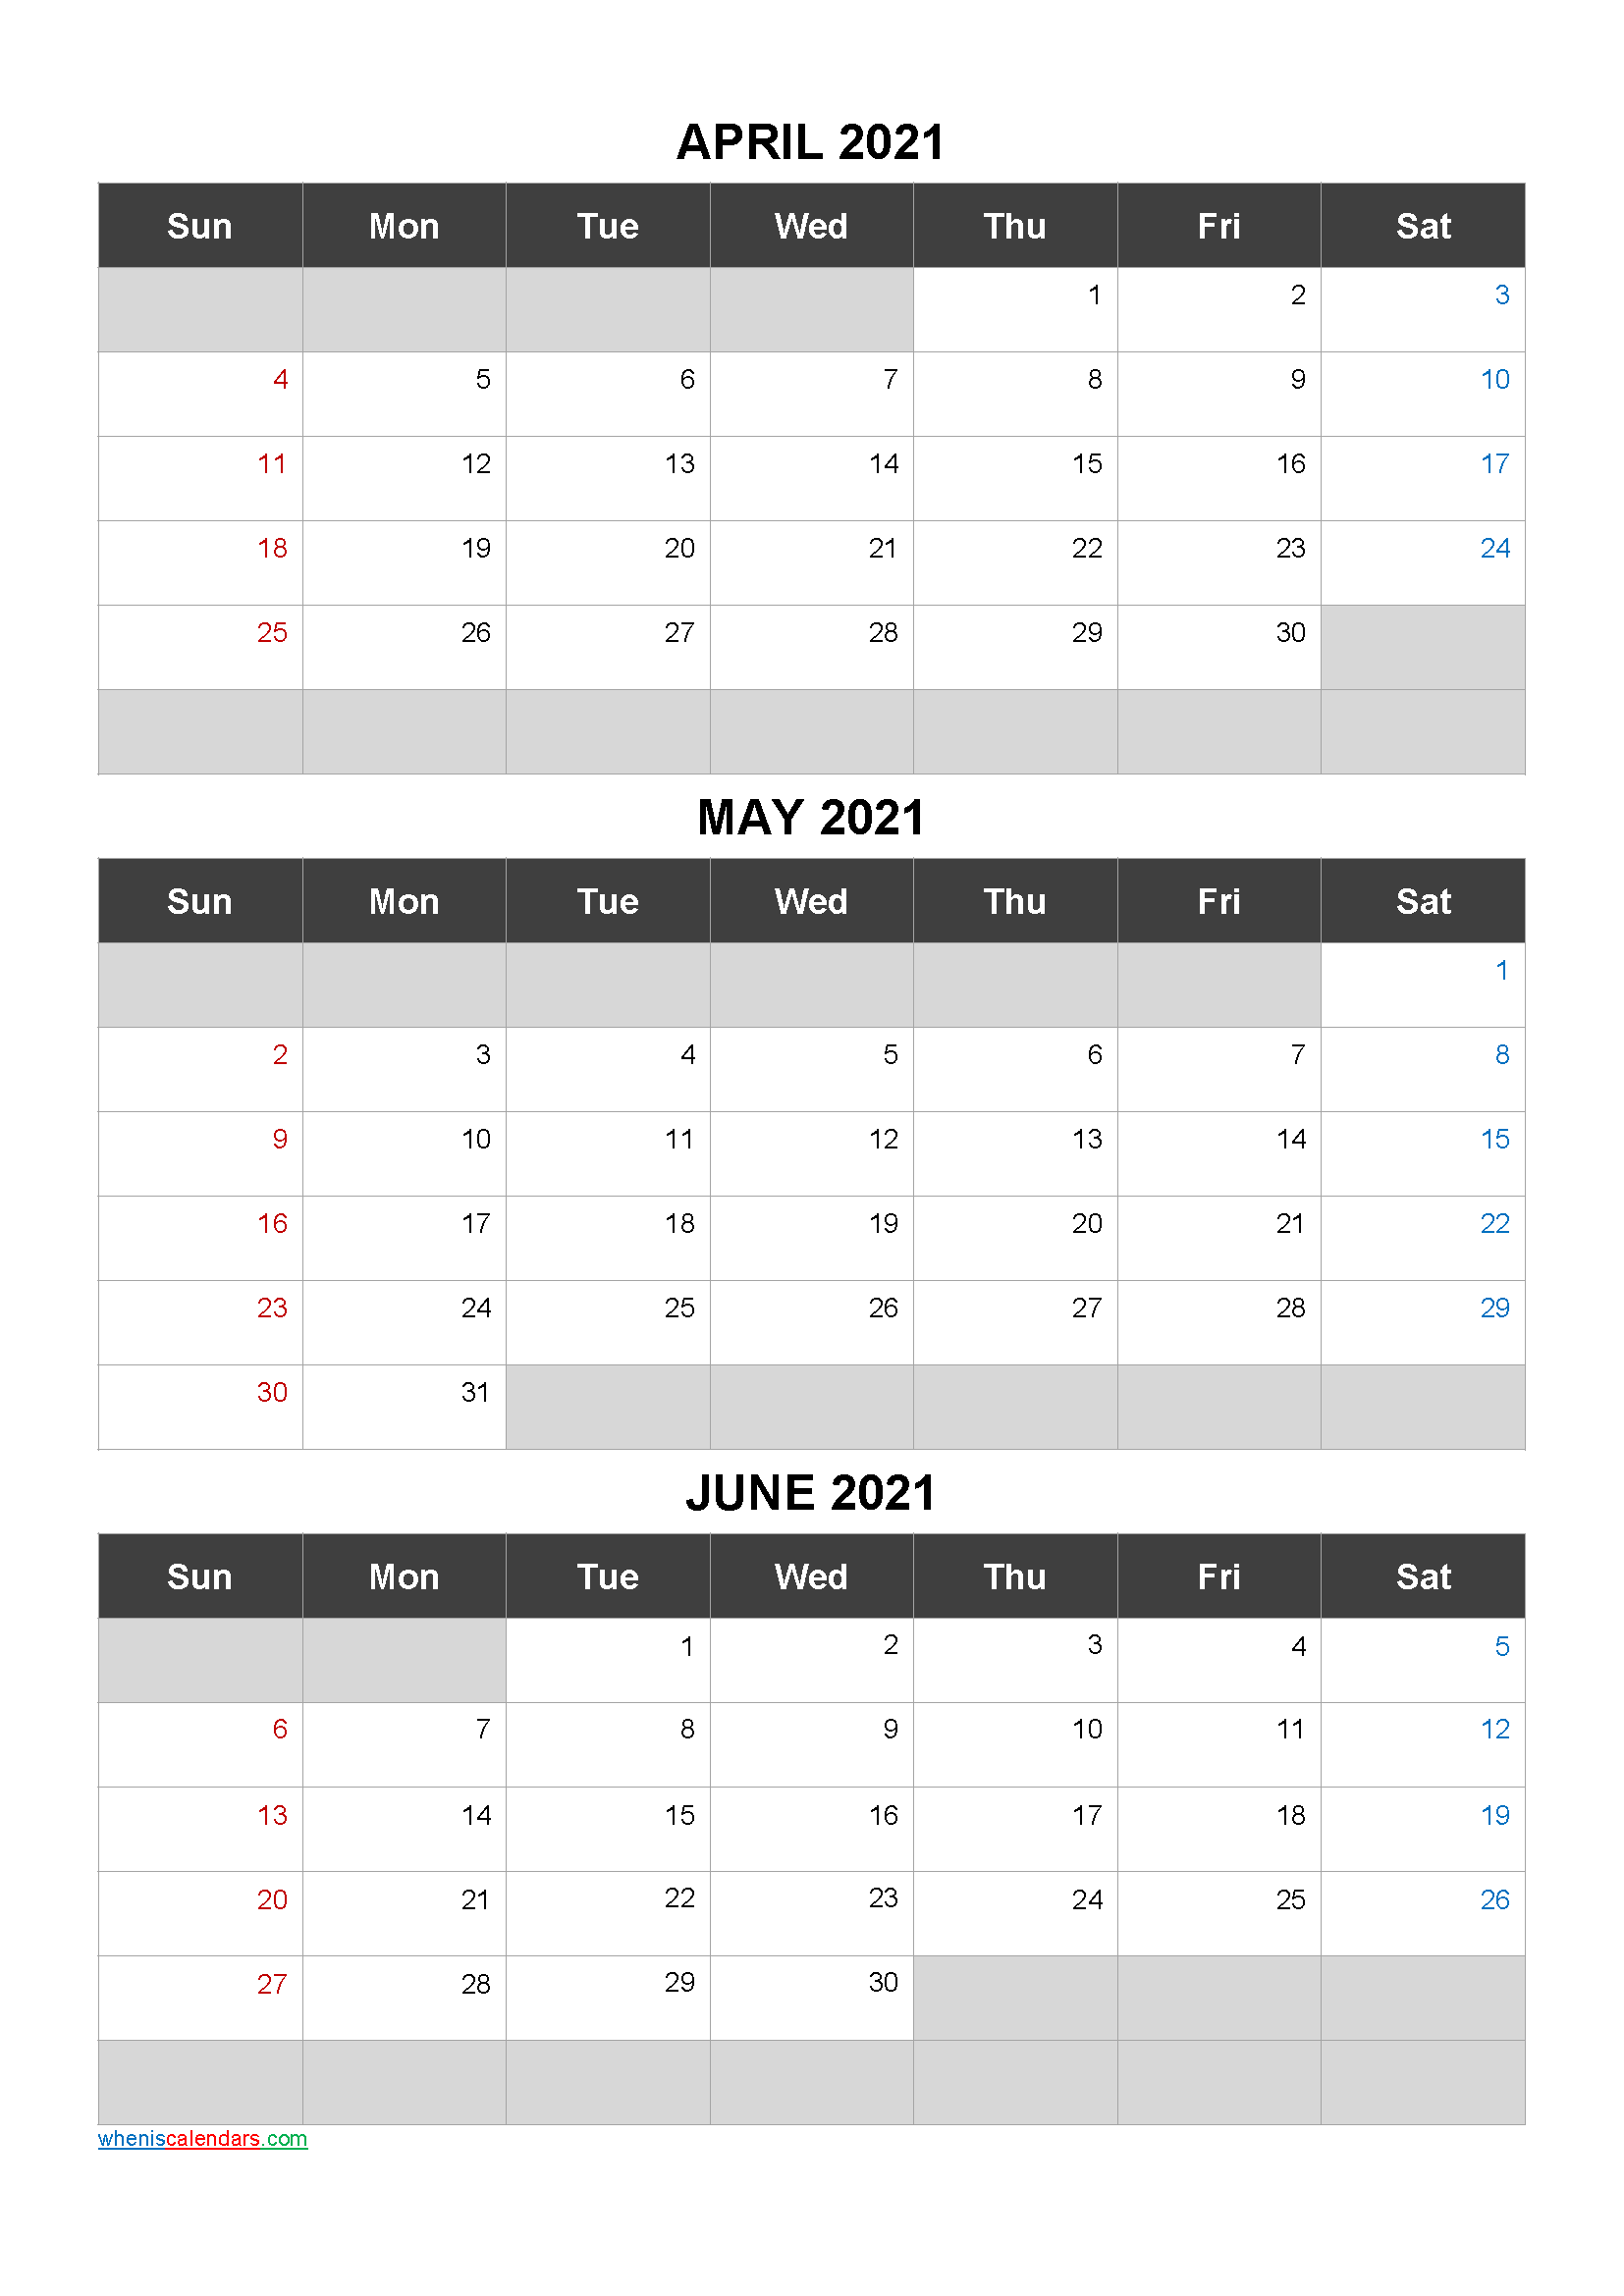 Printable Calendar April May June 2021